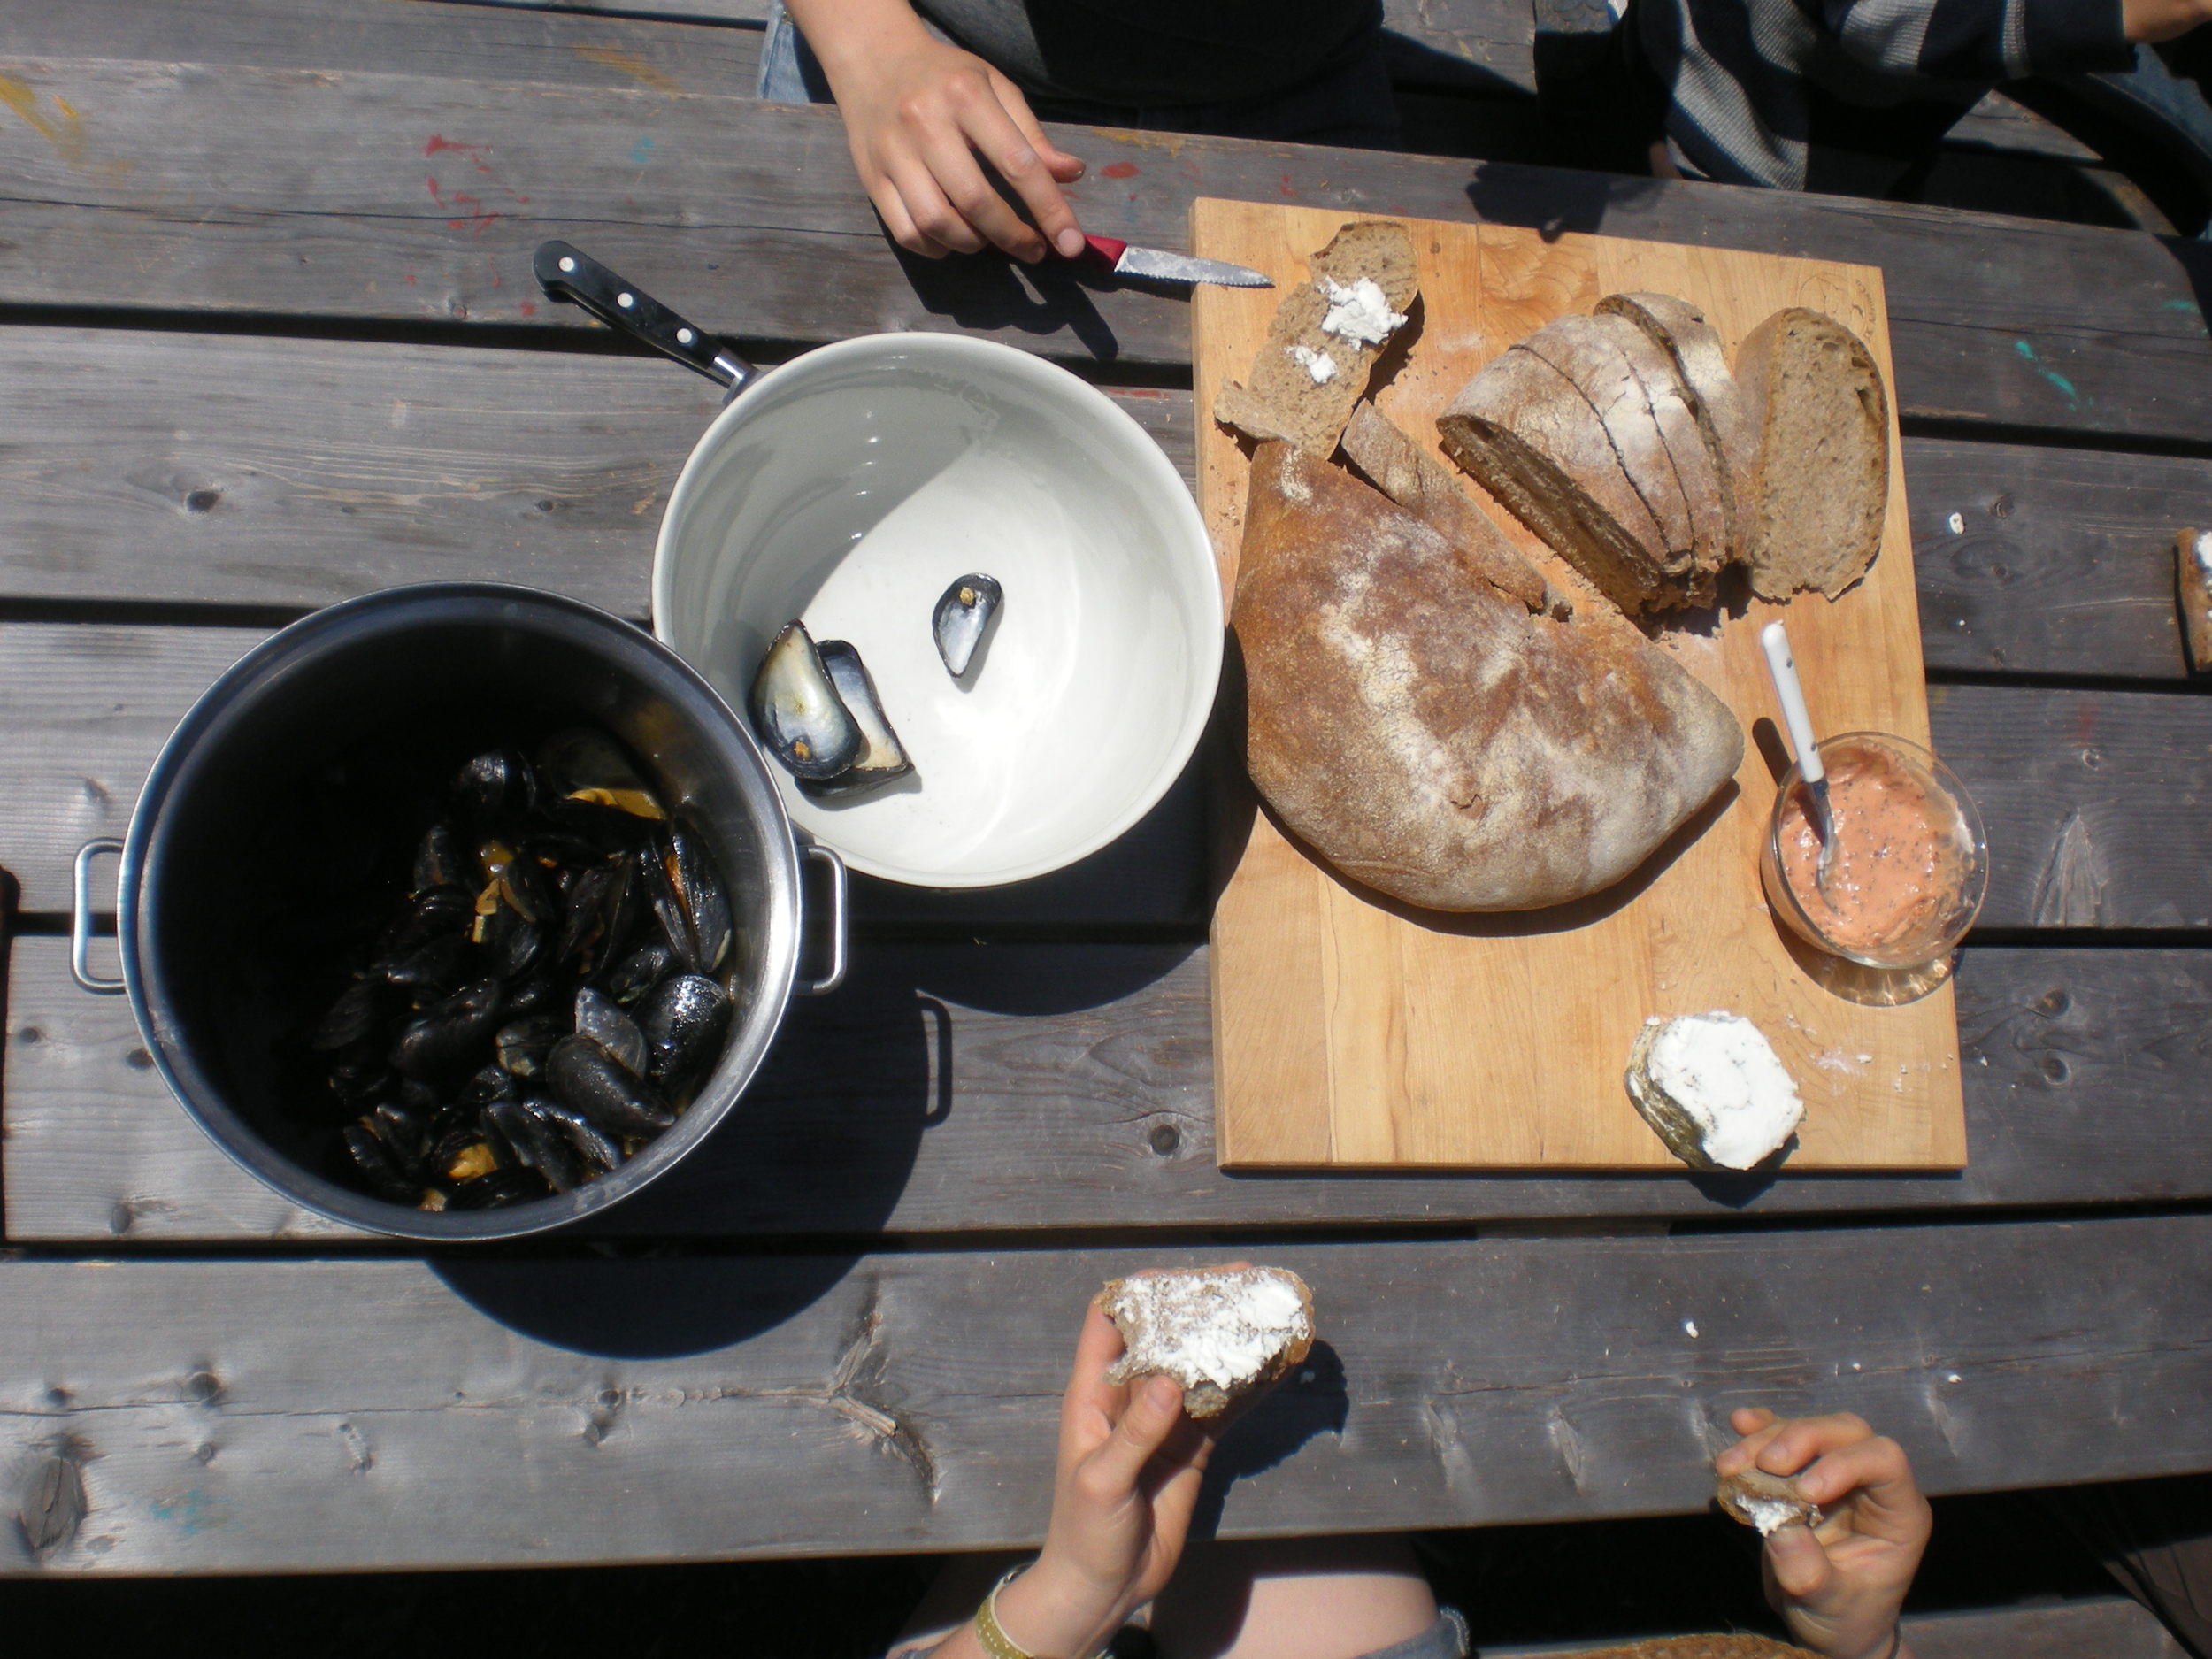 Mussels, homemade bread, and local goat cheese out on the picnic tables.